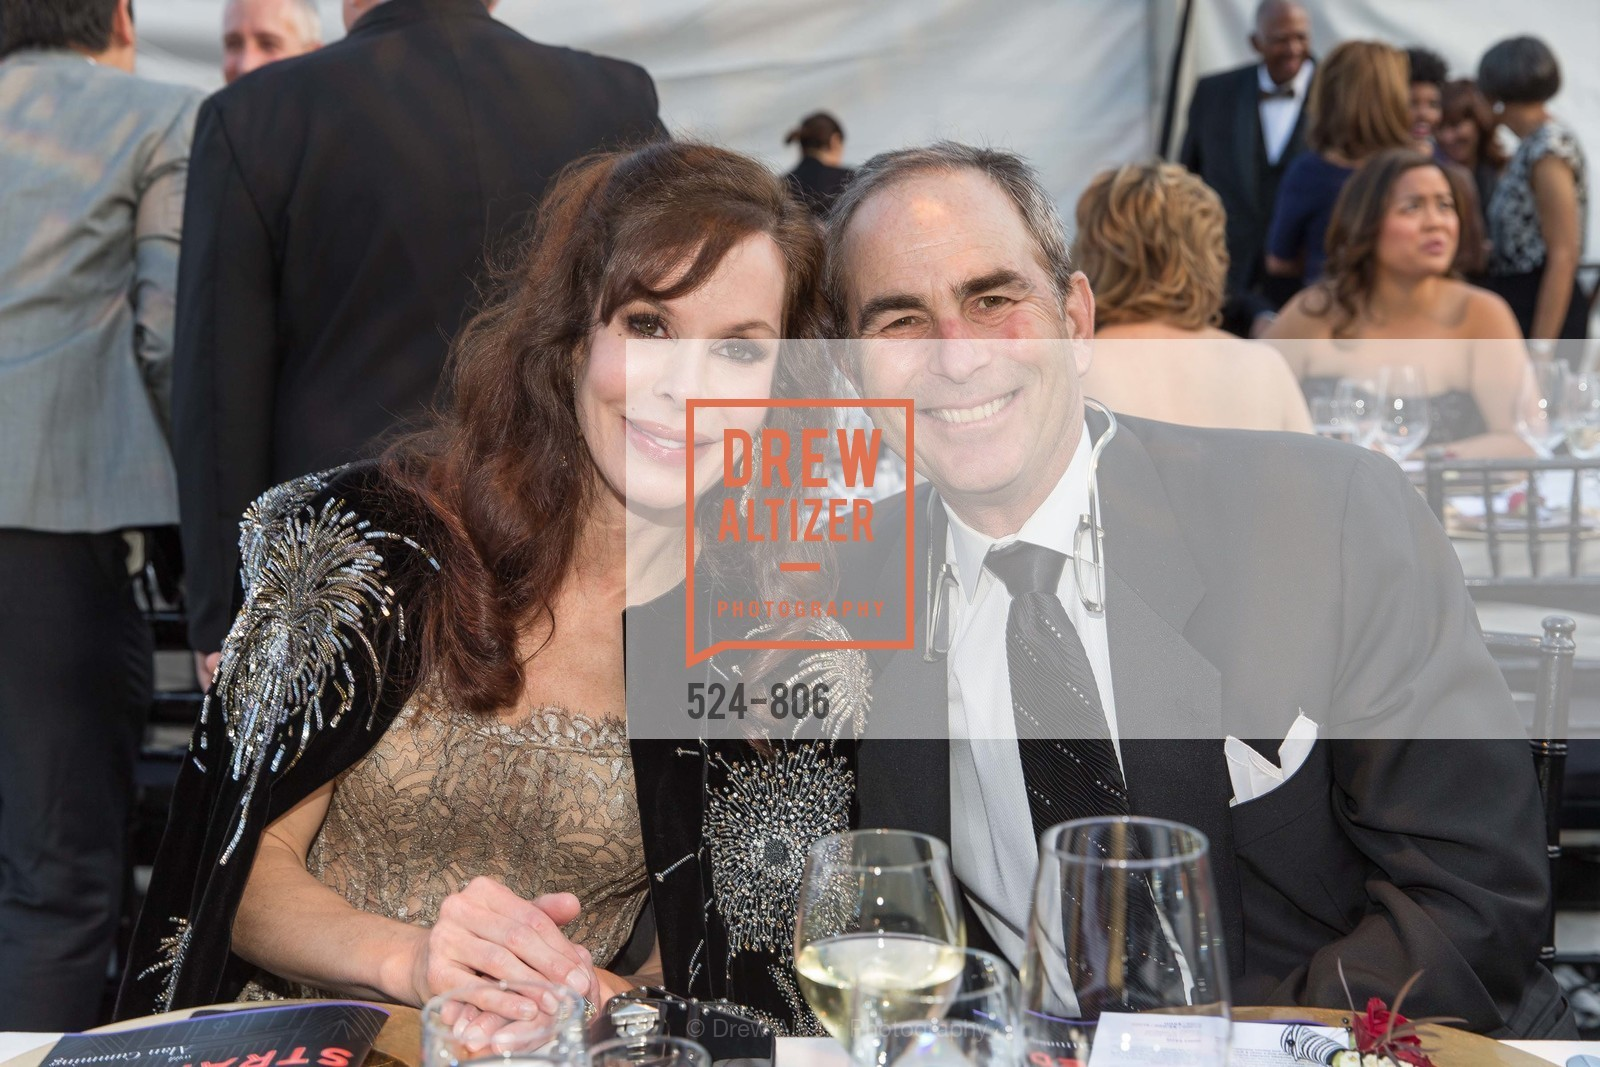 Stephanie Marver, Todd Werby, A.C.T. Gala Come Get Stranded, US, April 26th, 2015,Drew Altizer, Drew Altizer Photography, full-service agency, private events, San Francisco photographer, photographer california